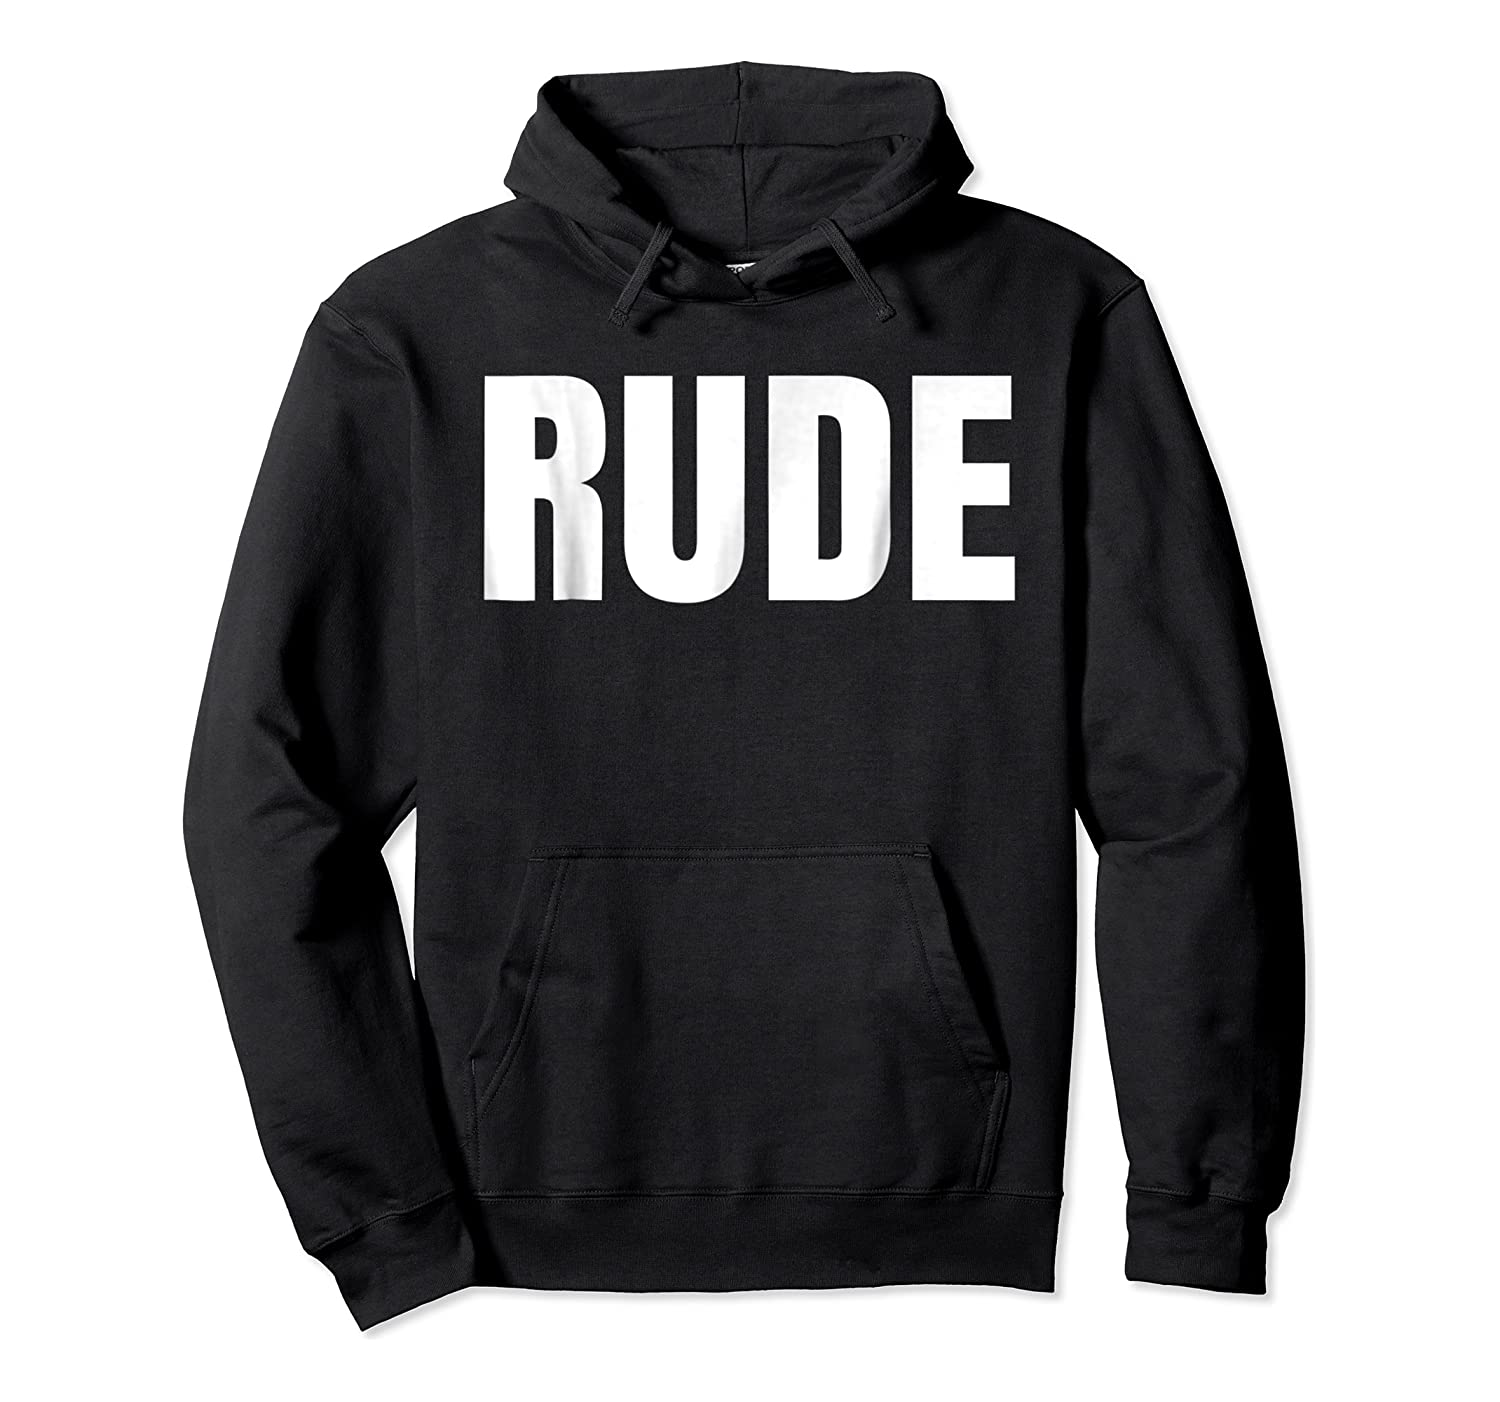 Says Rude Funny One Word Fashion Shirts Unisex Pullover Hoodie